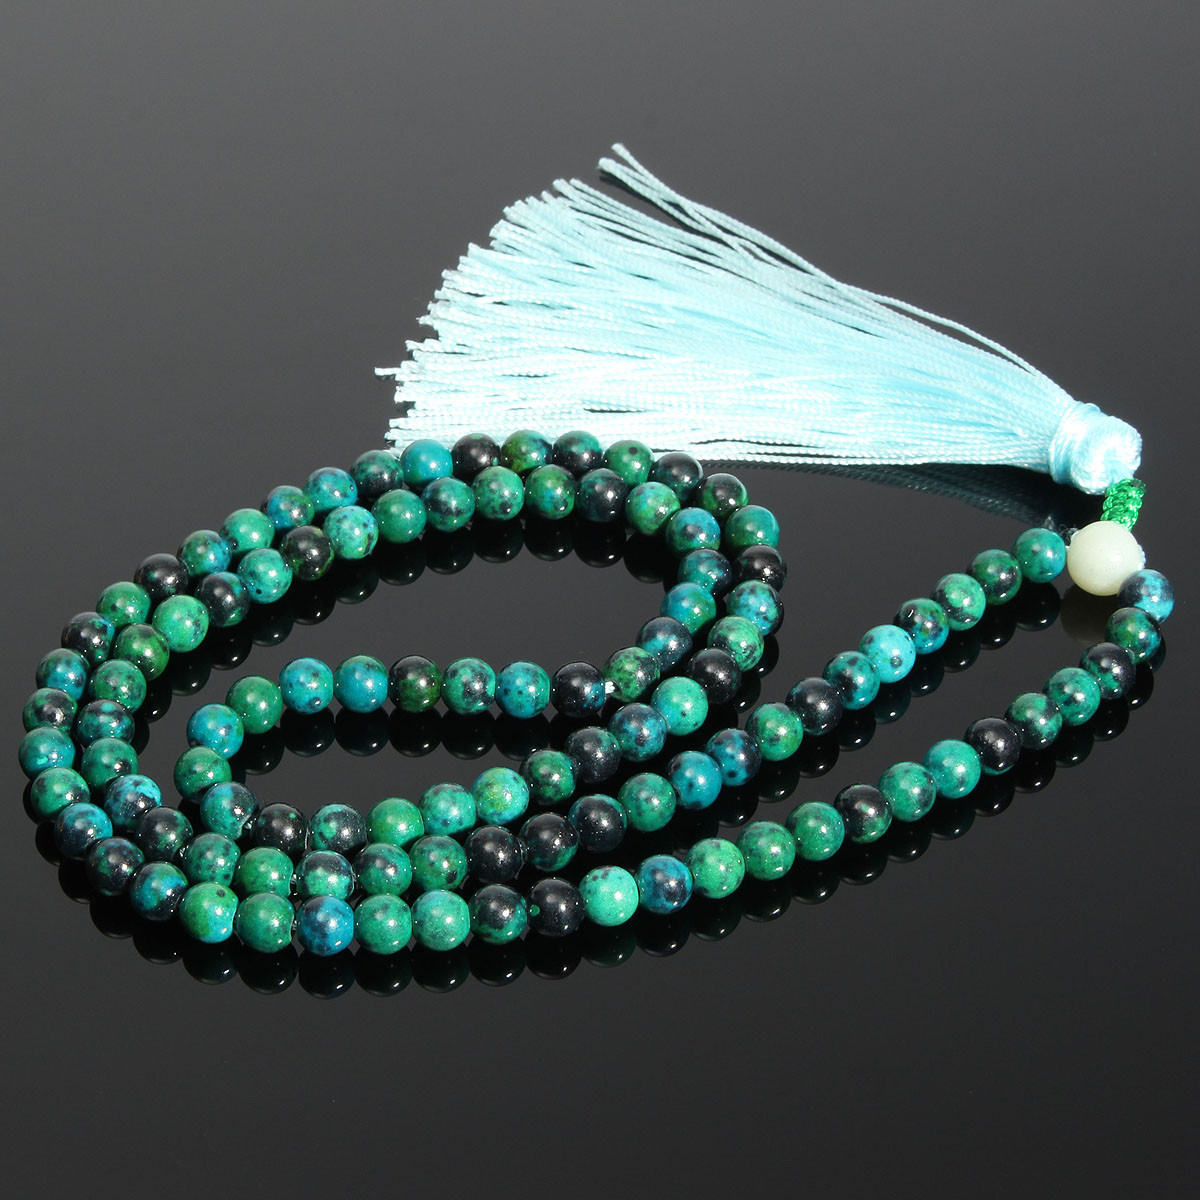 108Pcs 6mm Dark Green Jade Prayer Beads Bracelet Necklace Jewelry